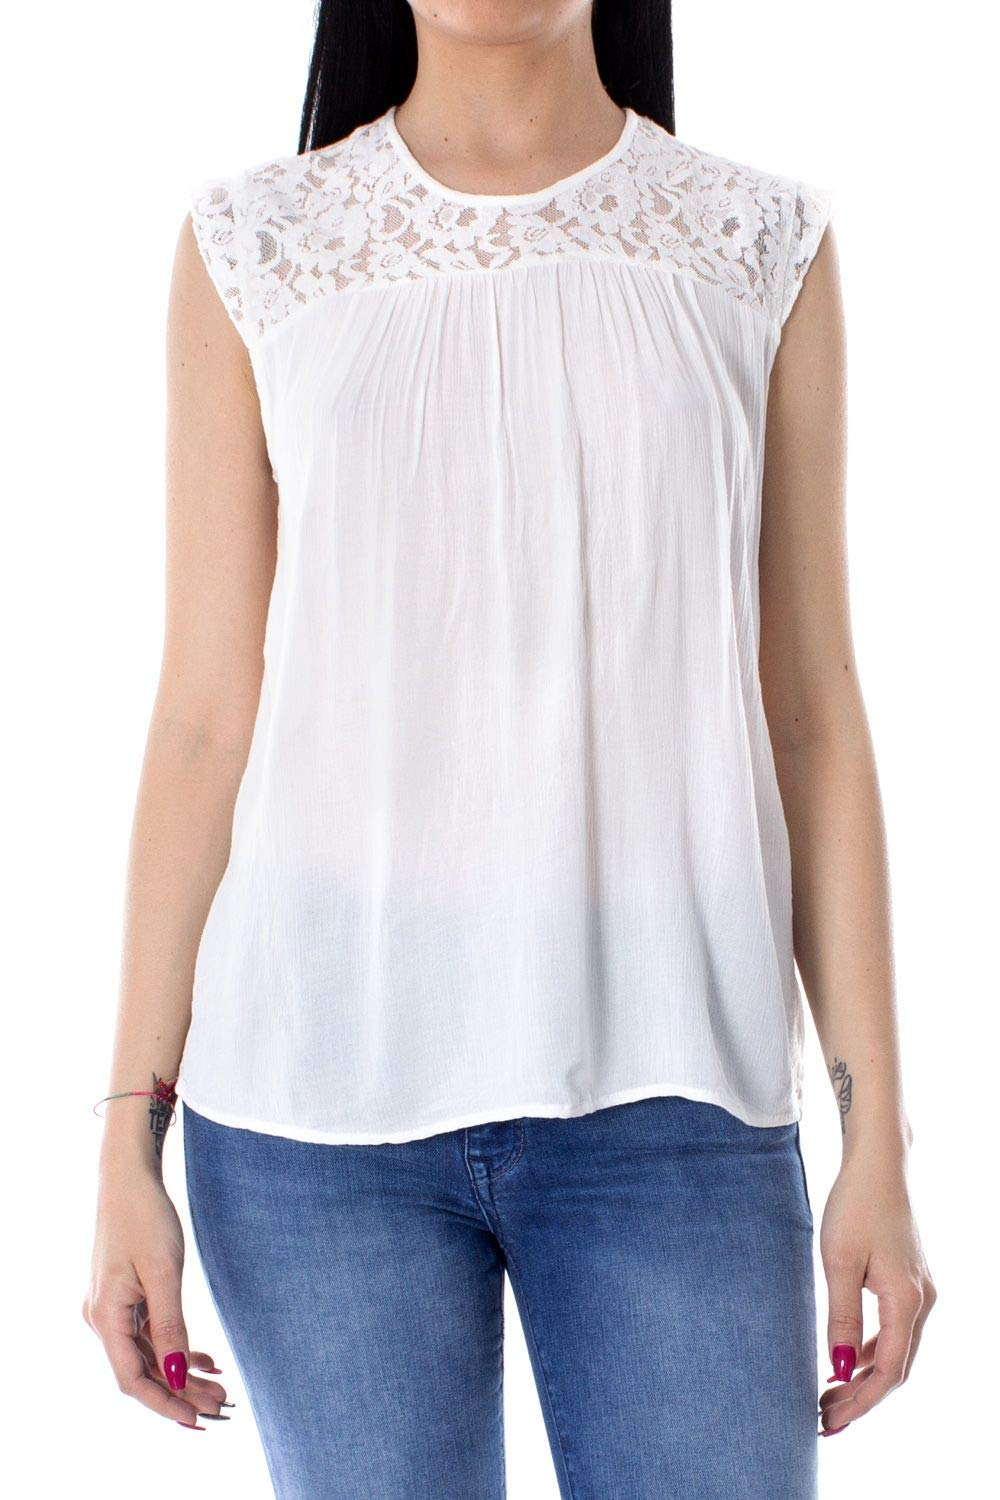 Only Women's 15157657WHITE White Viscose Tank Top